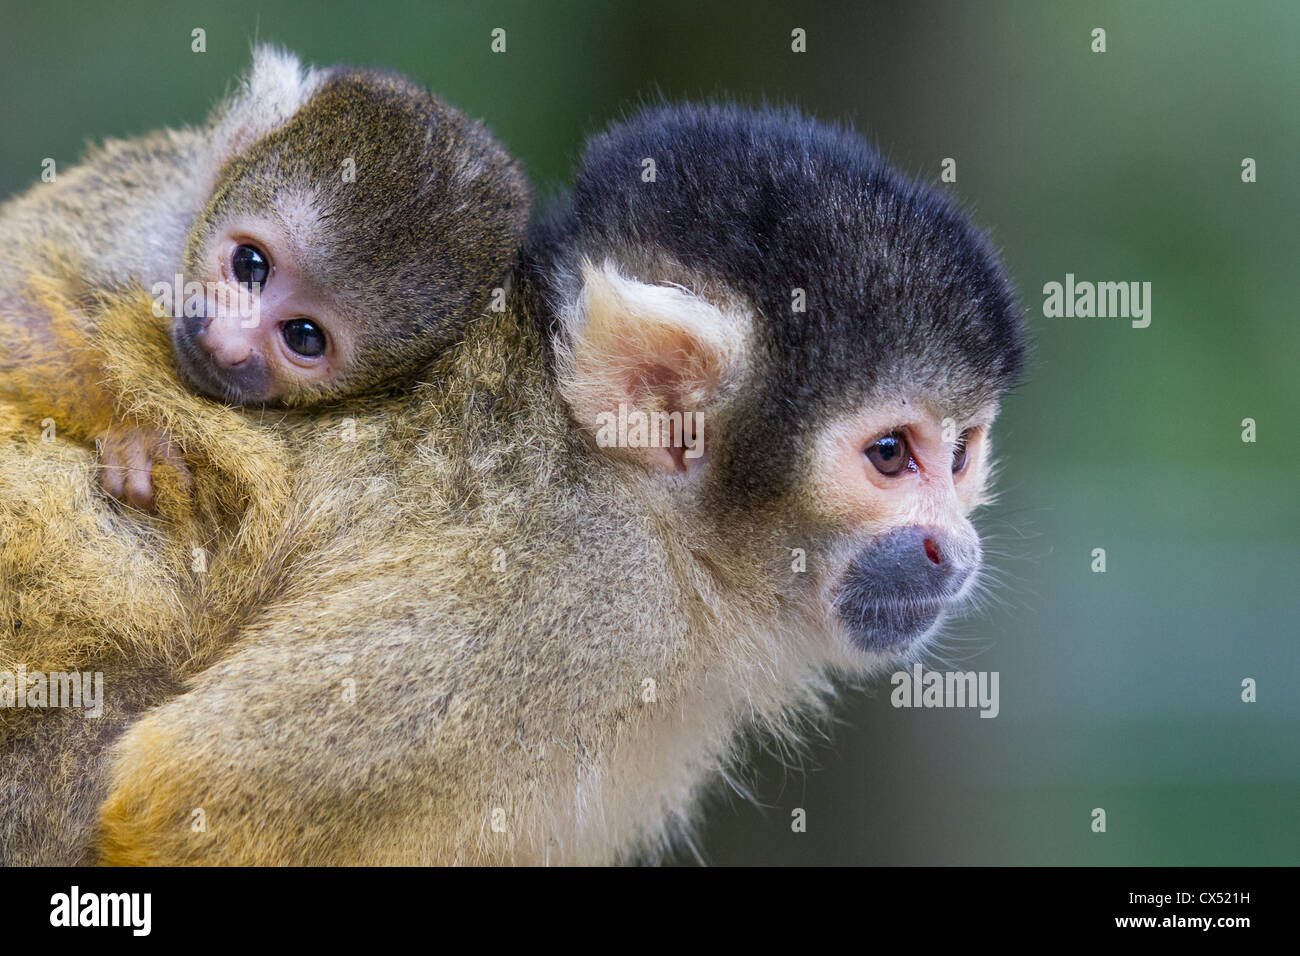 Female Bolivian squirrel monkey (Saimiri boliviensis) carrying young on her back. - Stock Image